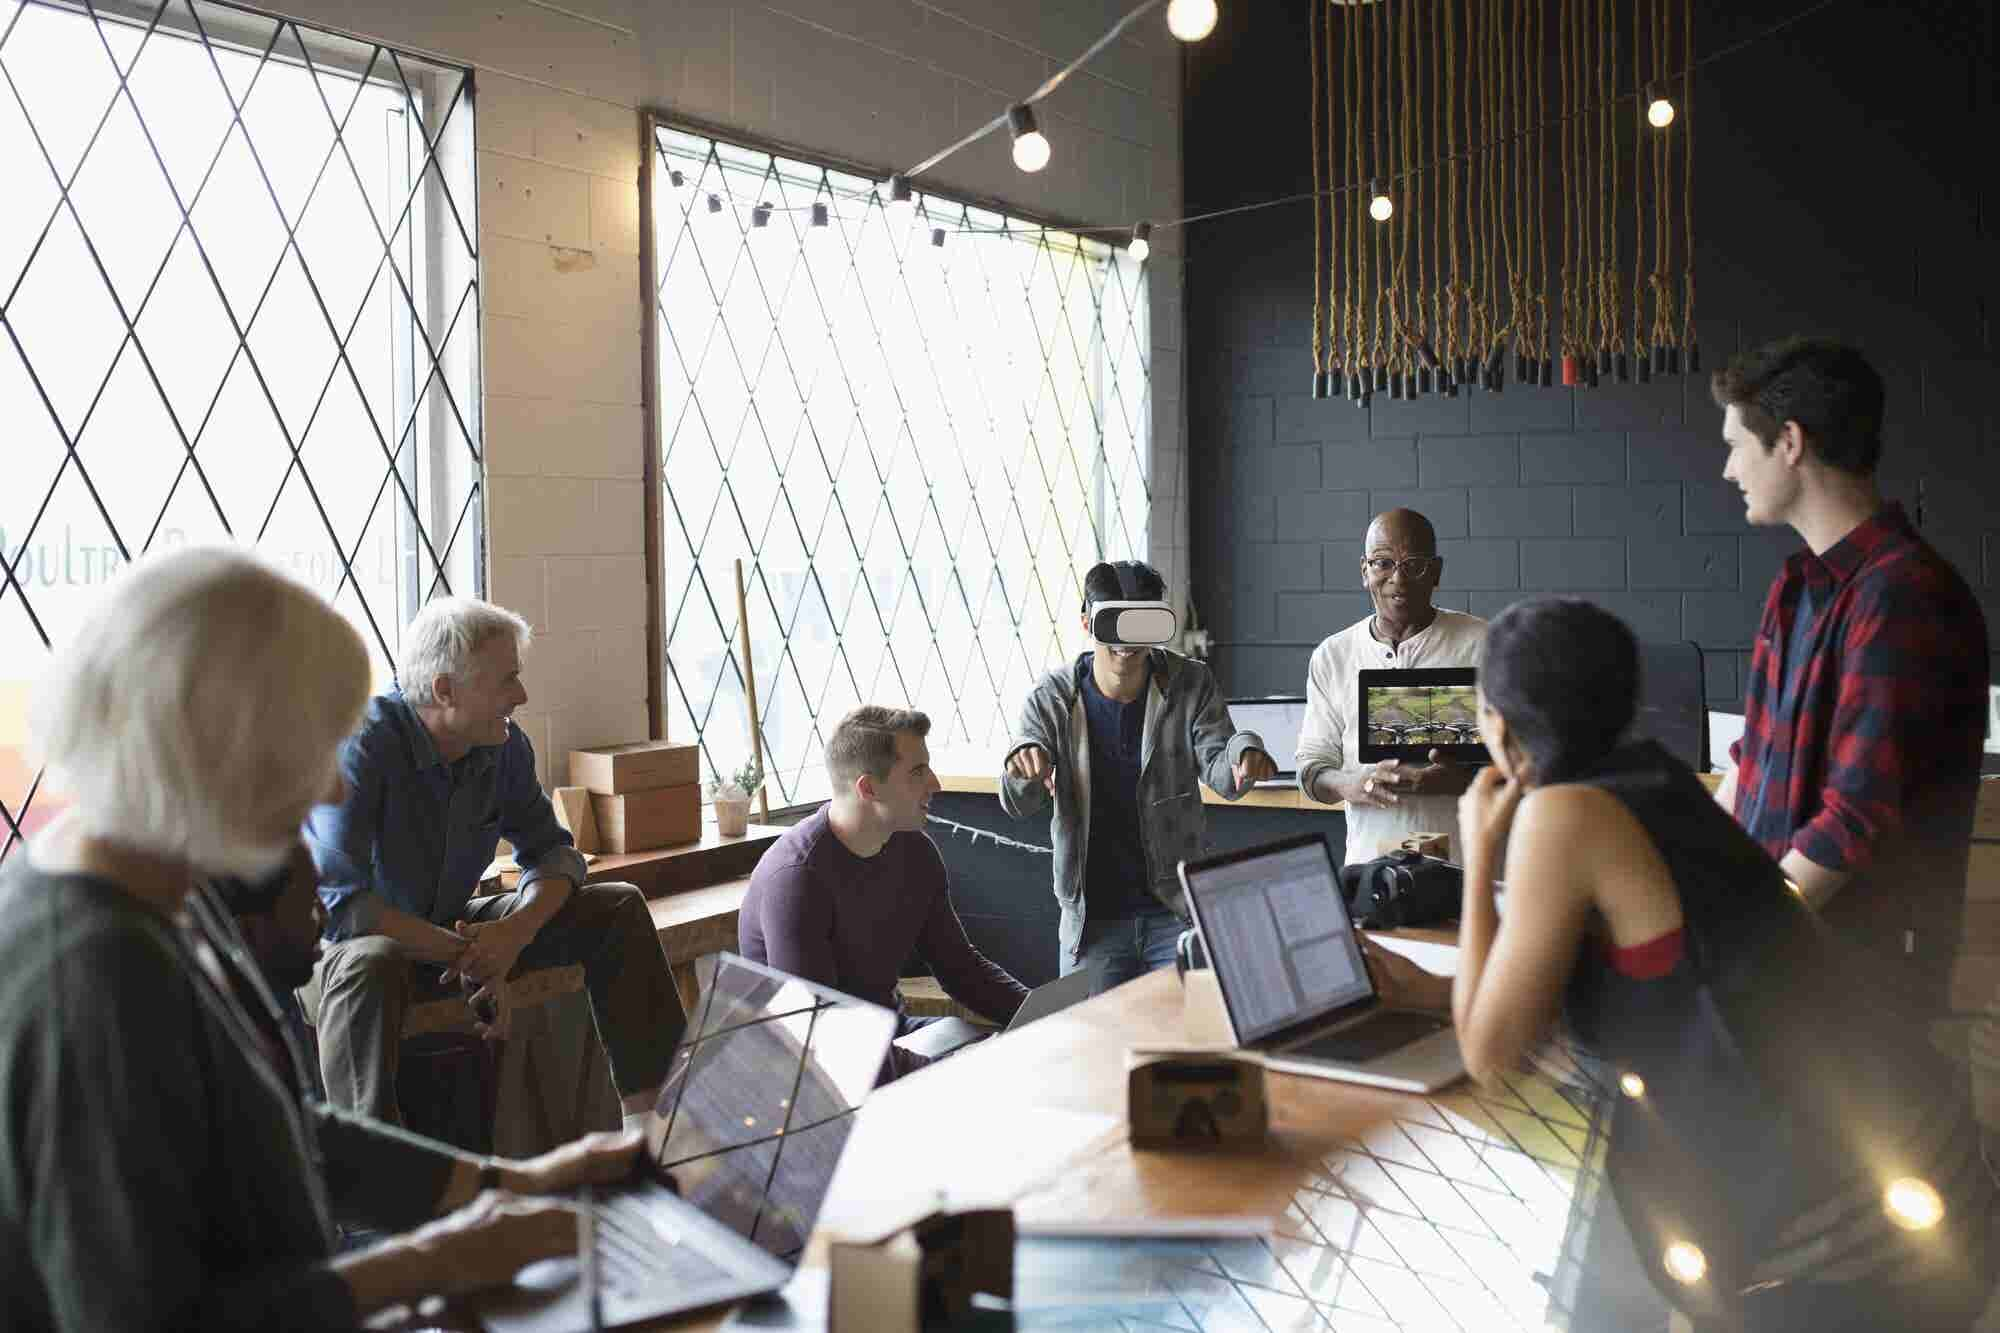 If You Want to Create Space for Innovation at Your Company, This Is What You Need to Do